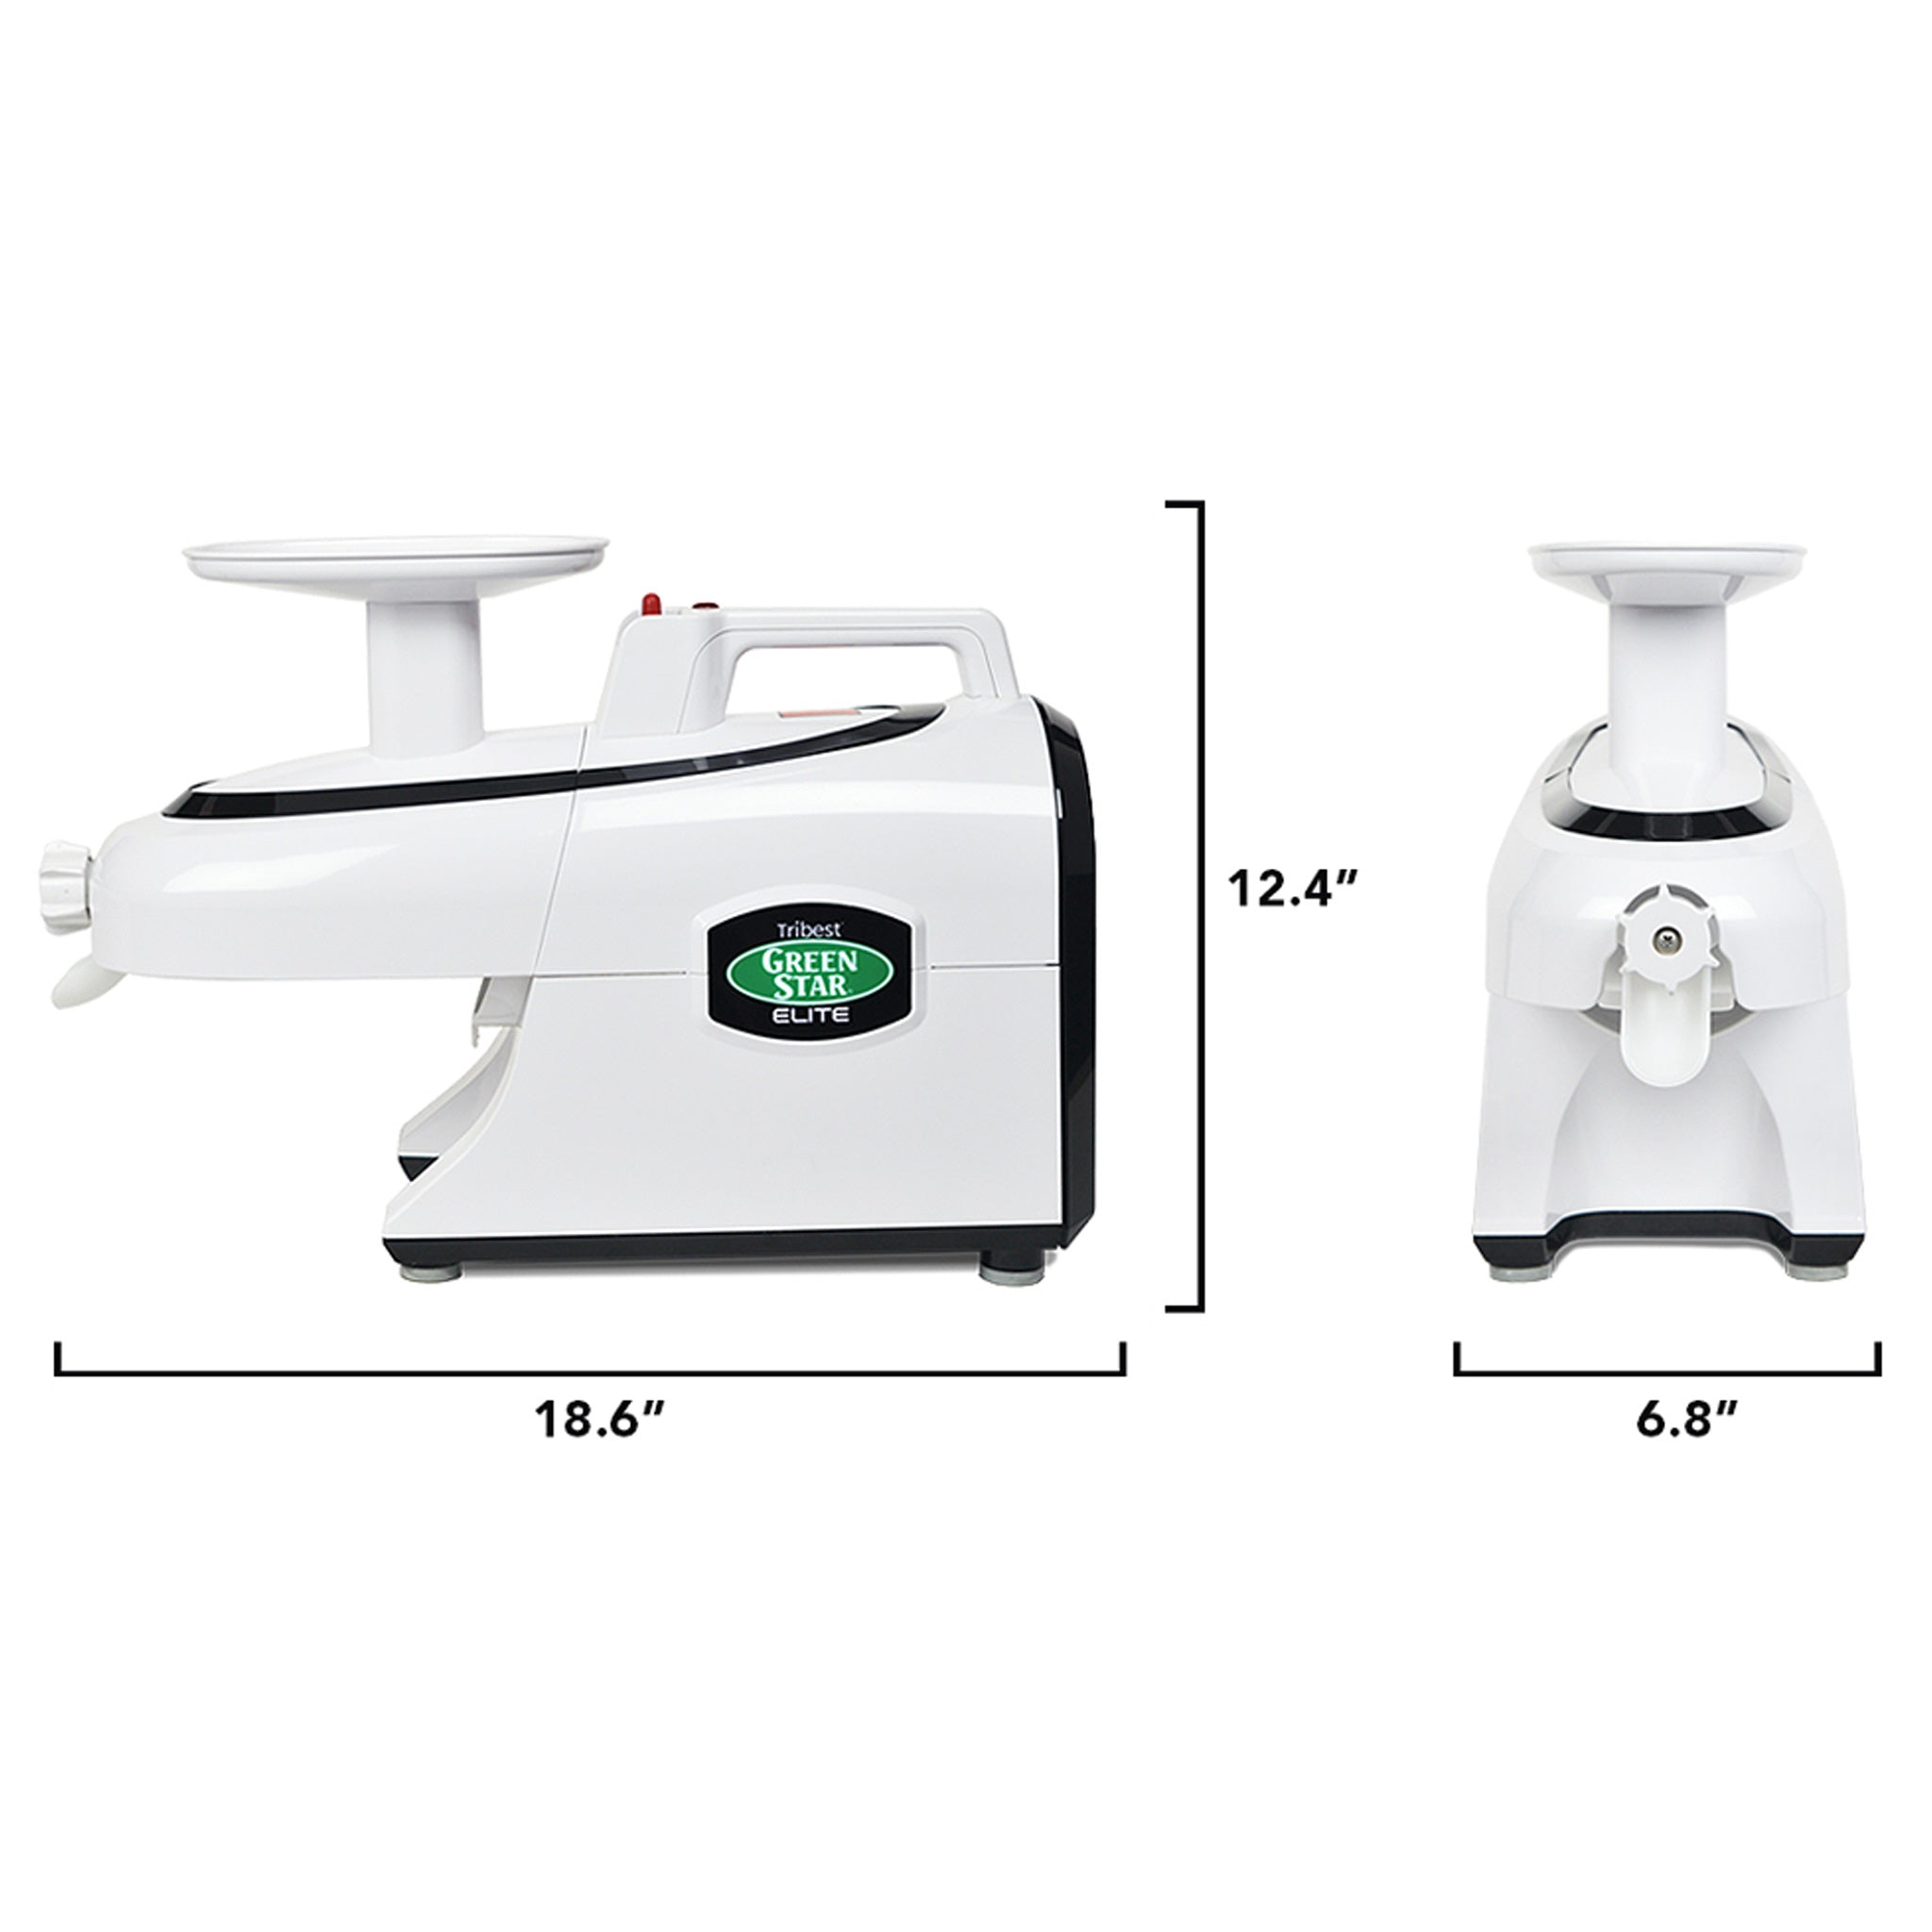 "Greenstar® Elite Jumbo Twin Gear Slow Masticating Juicer in White GSE-5000-B - Size 18.6"" W x 6.8"" D x 12.4"" H - Tribest"